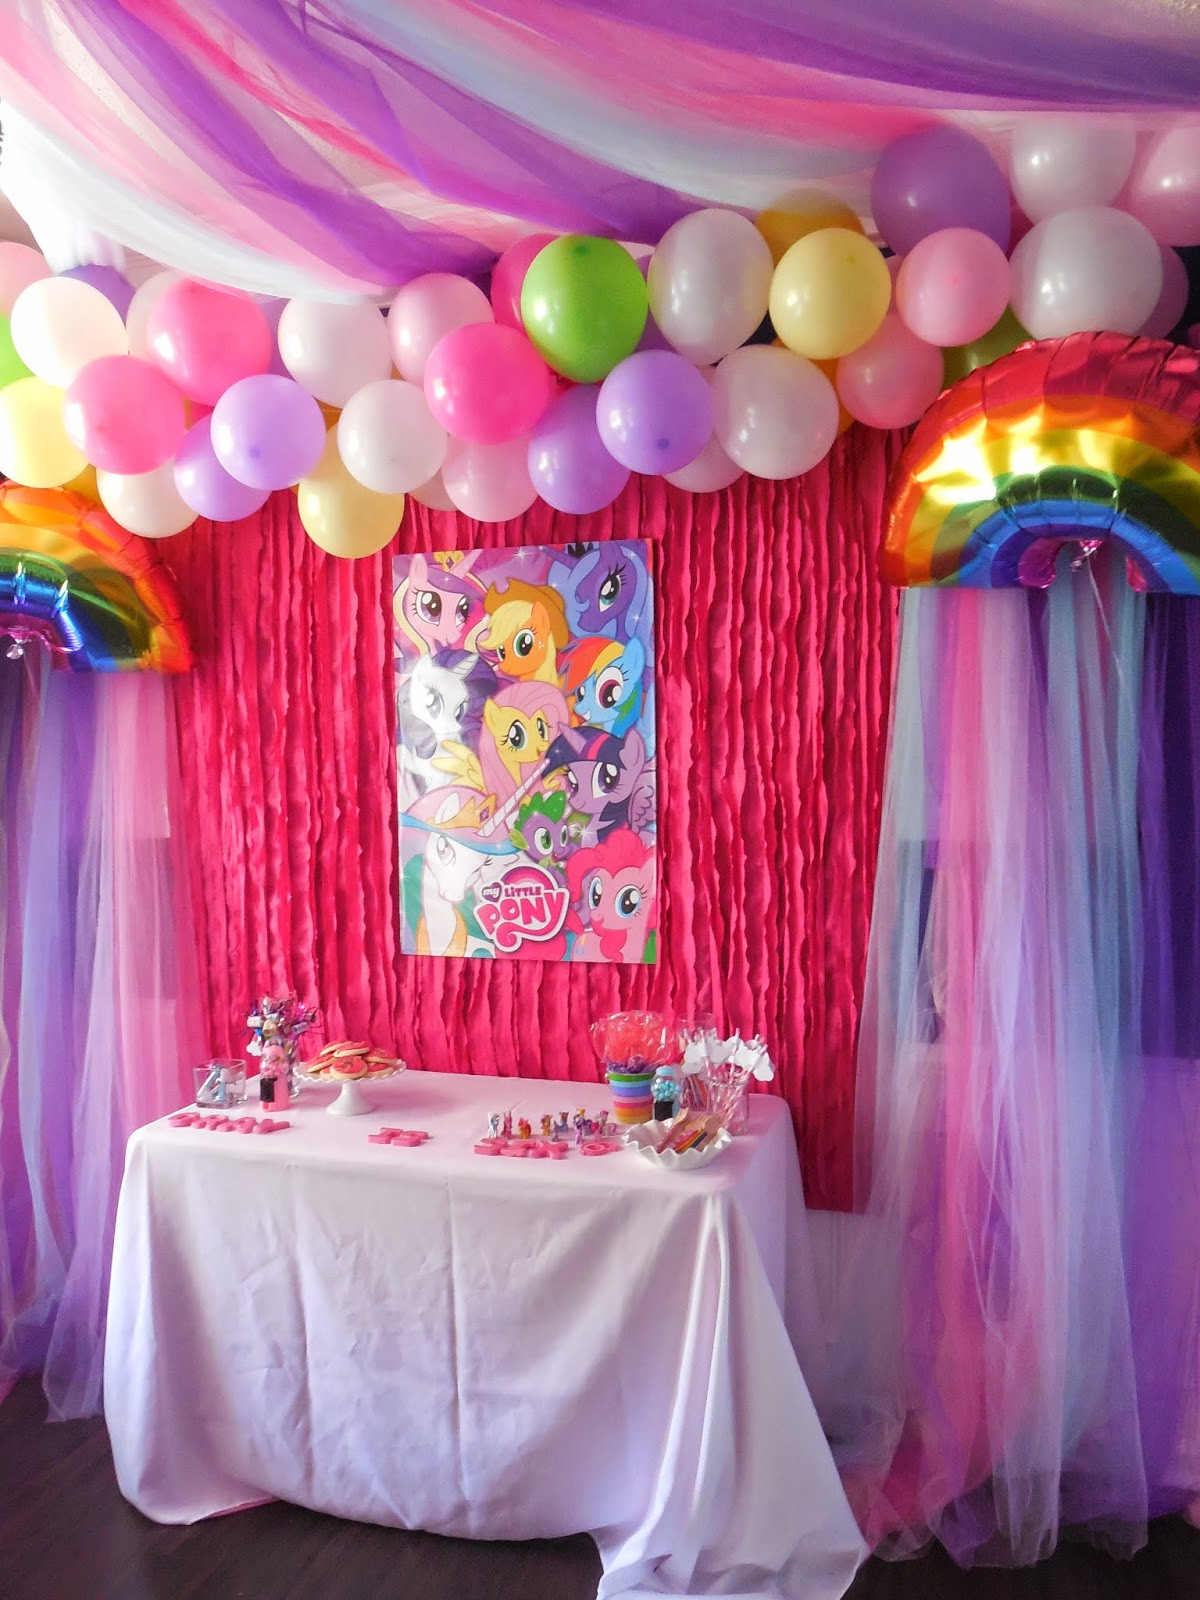 Best ideas about Ponies Birthday Party . Save or Pin My little pony party Now.